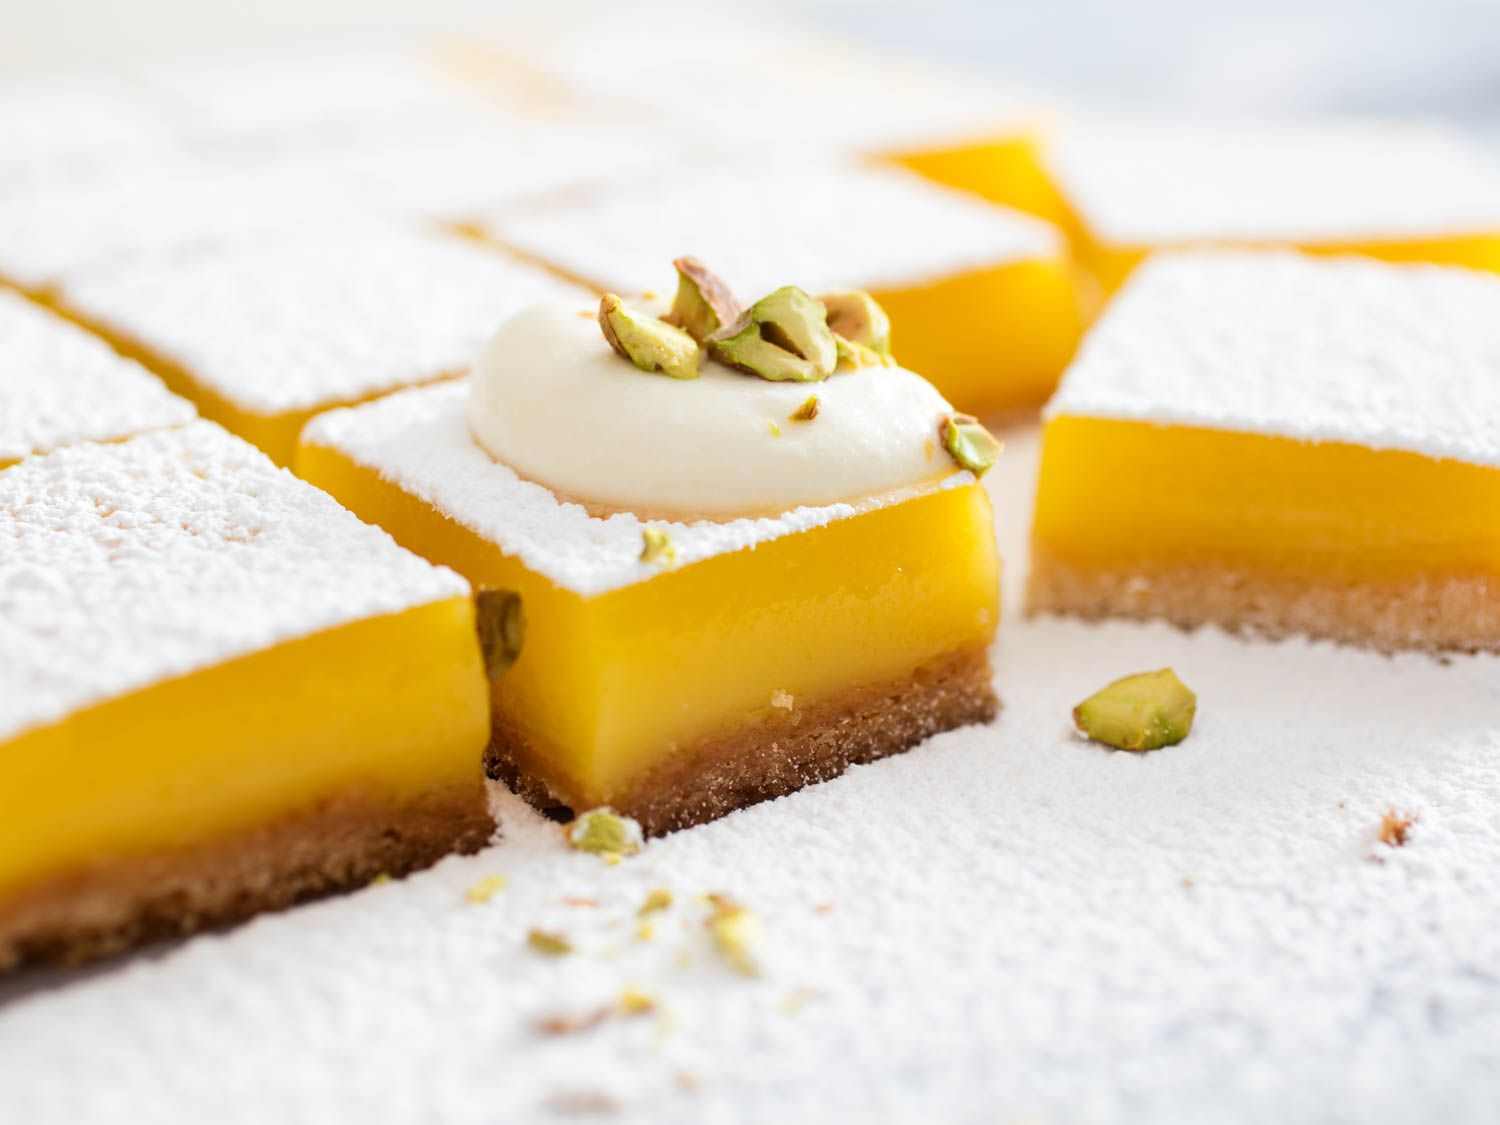 Lemon bars topped with powdered sugar, lemon chantilly, and chopped candied pistachios.